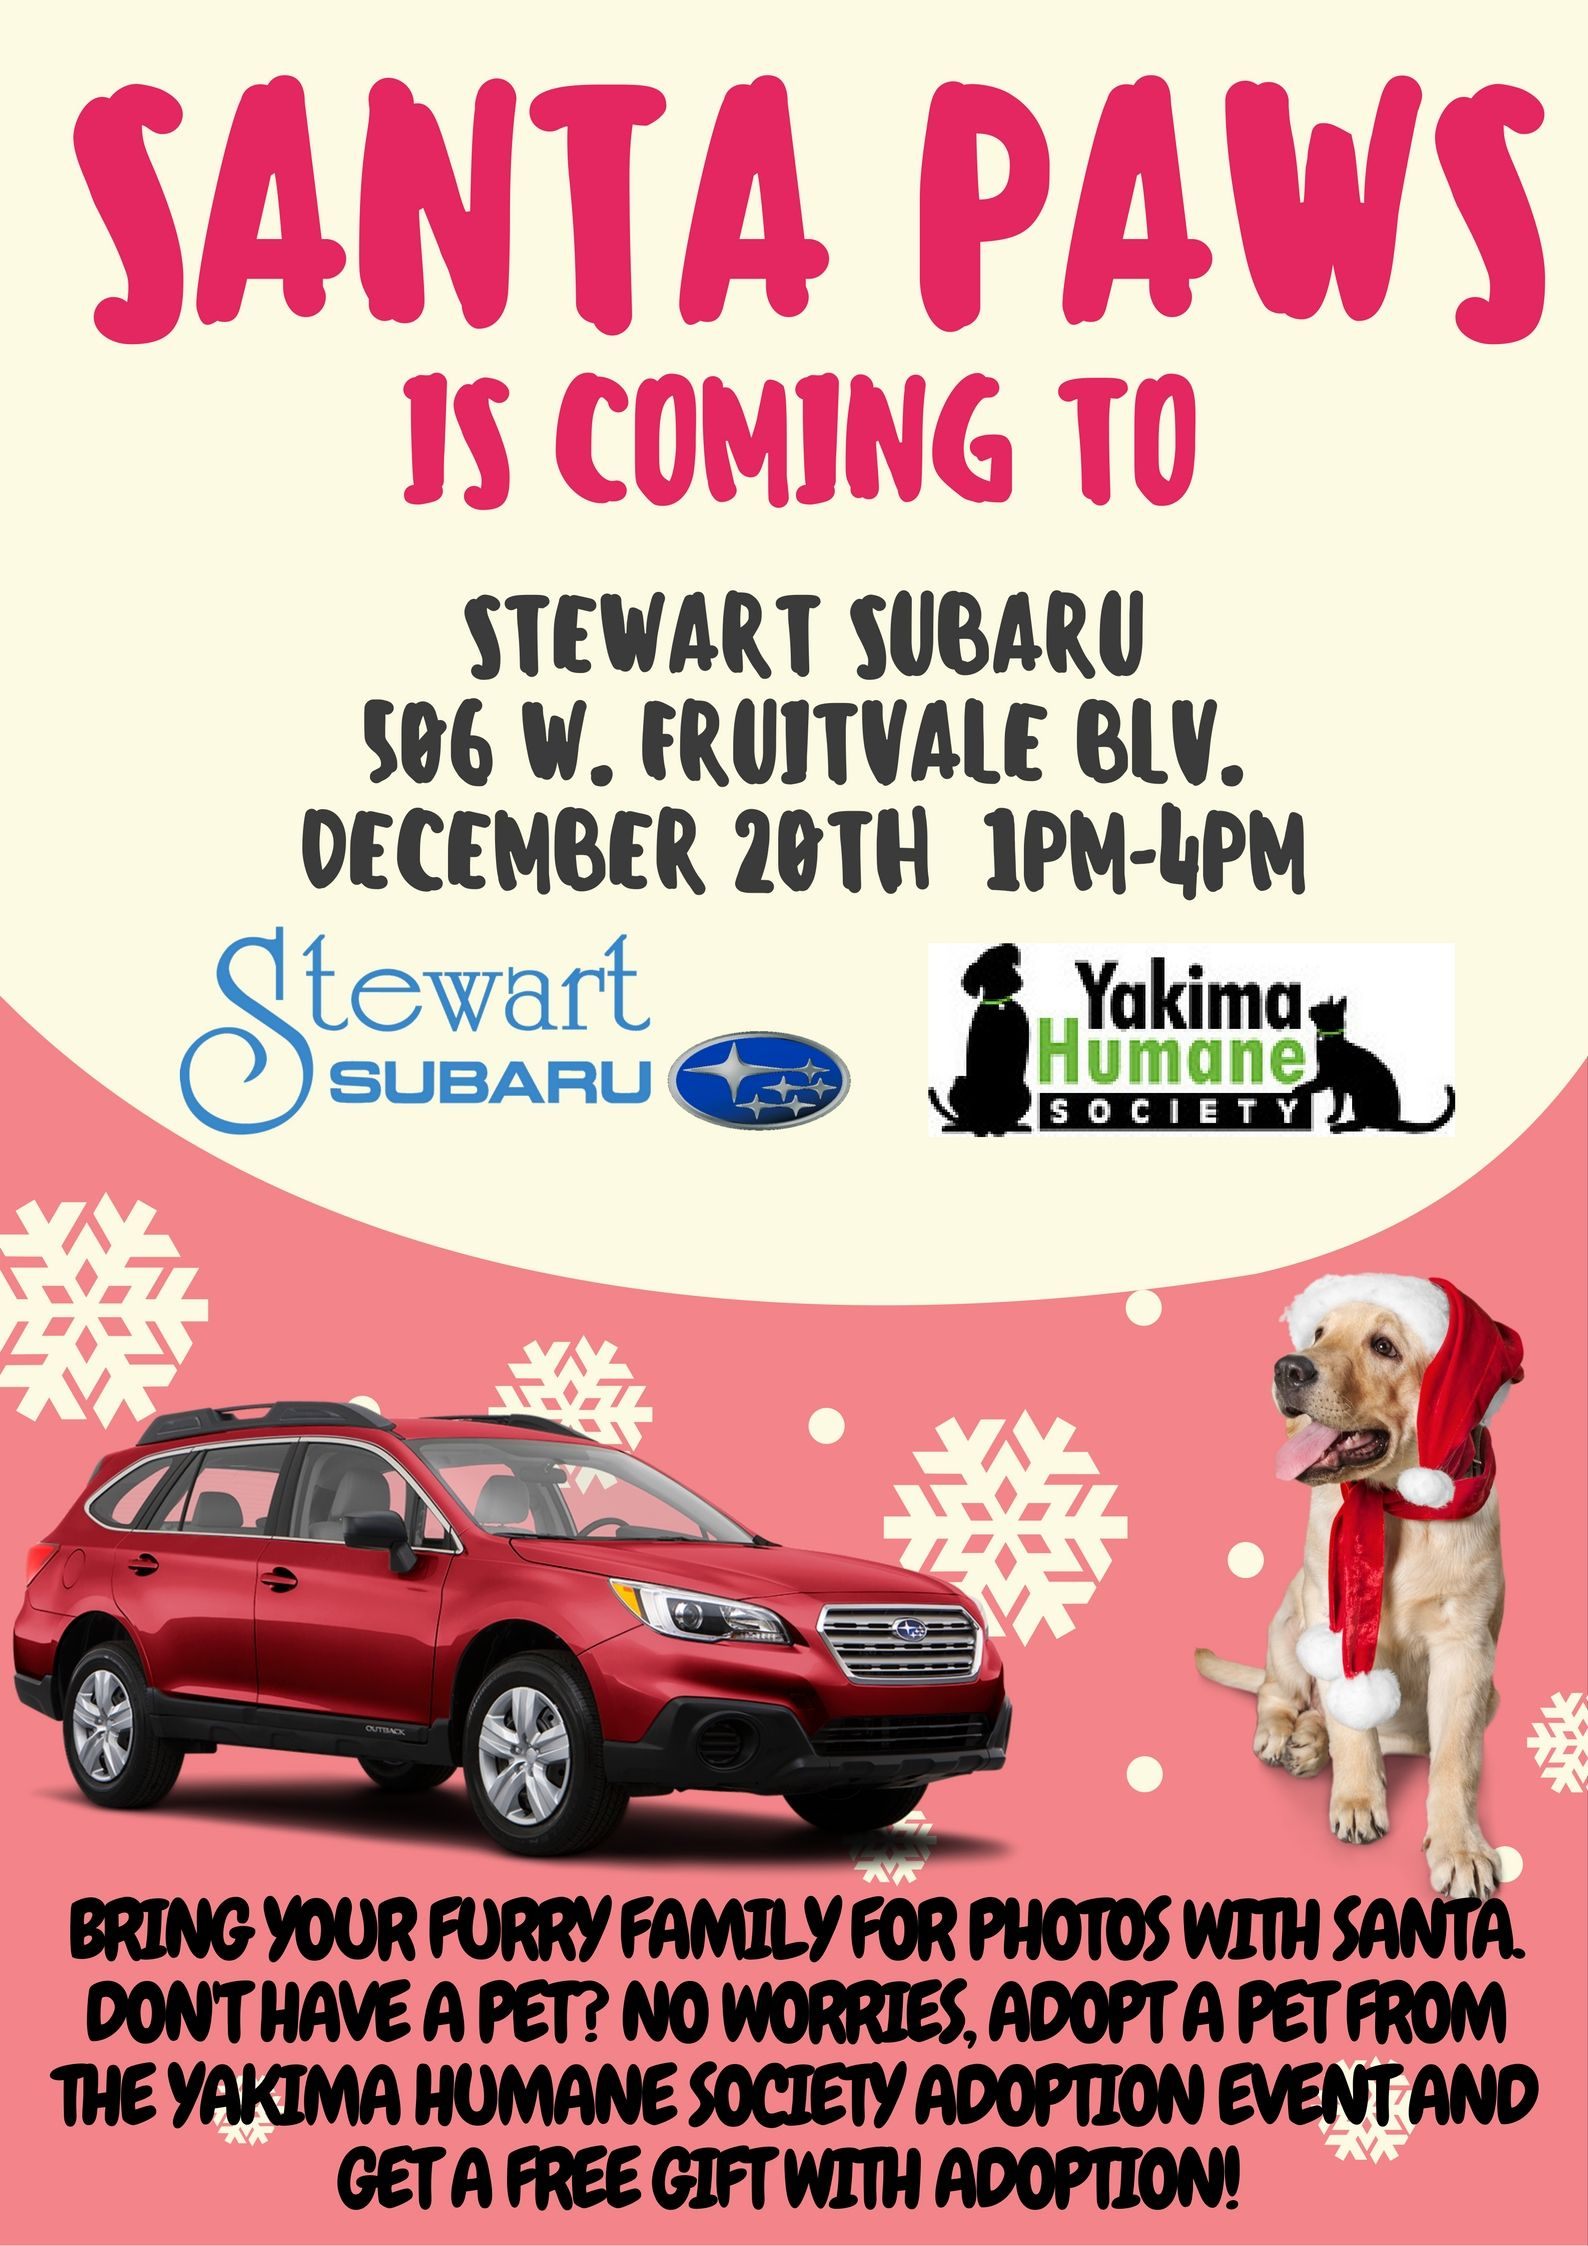 December 20th Get Your Family Pictures With Santa Paws At Stewart